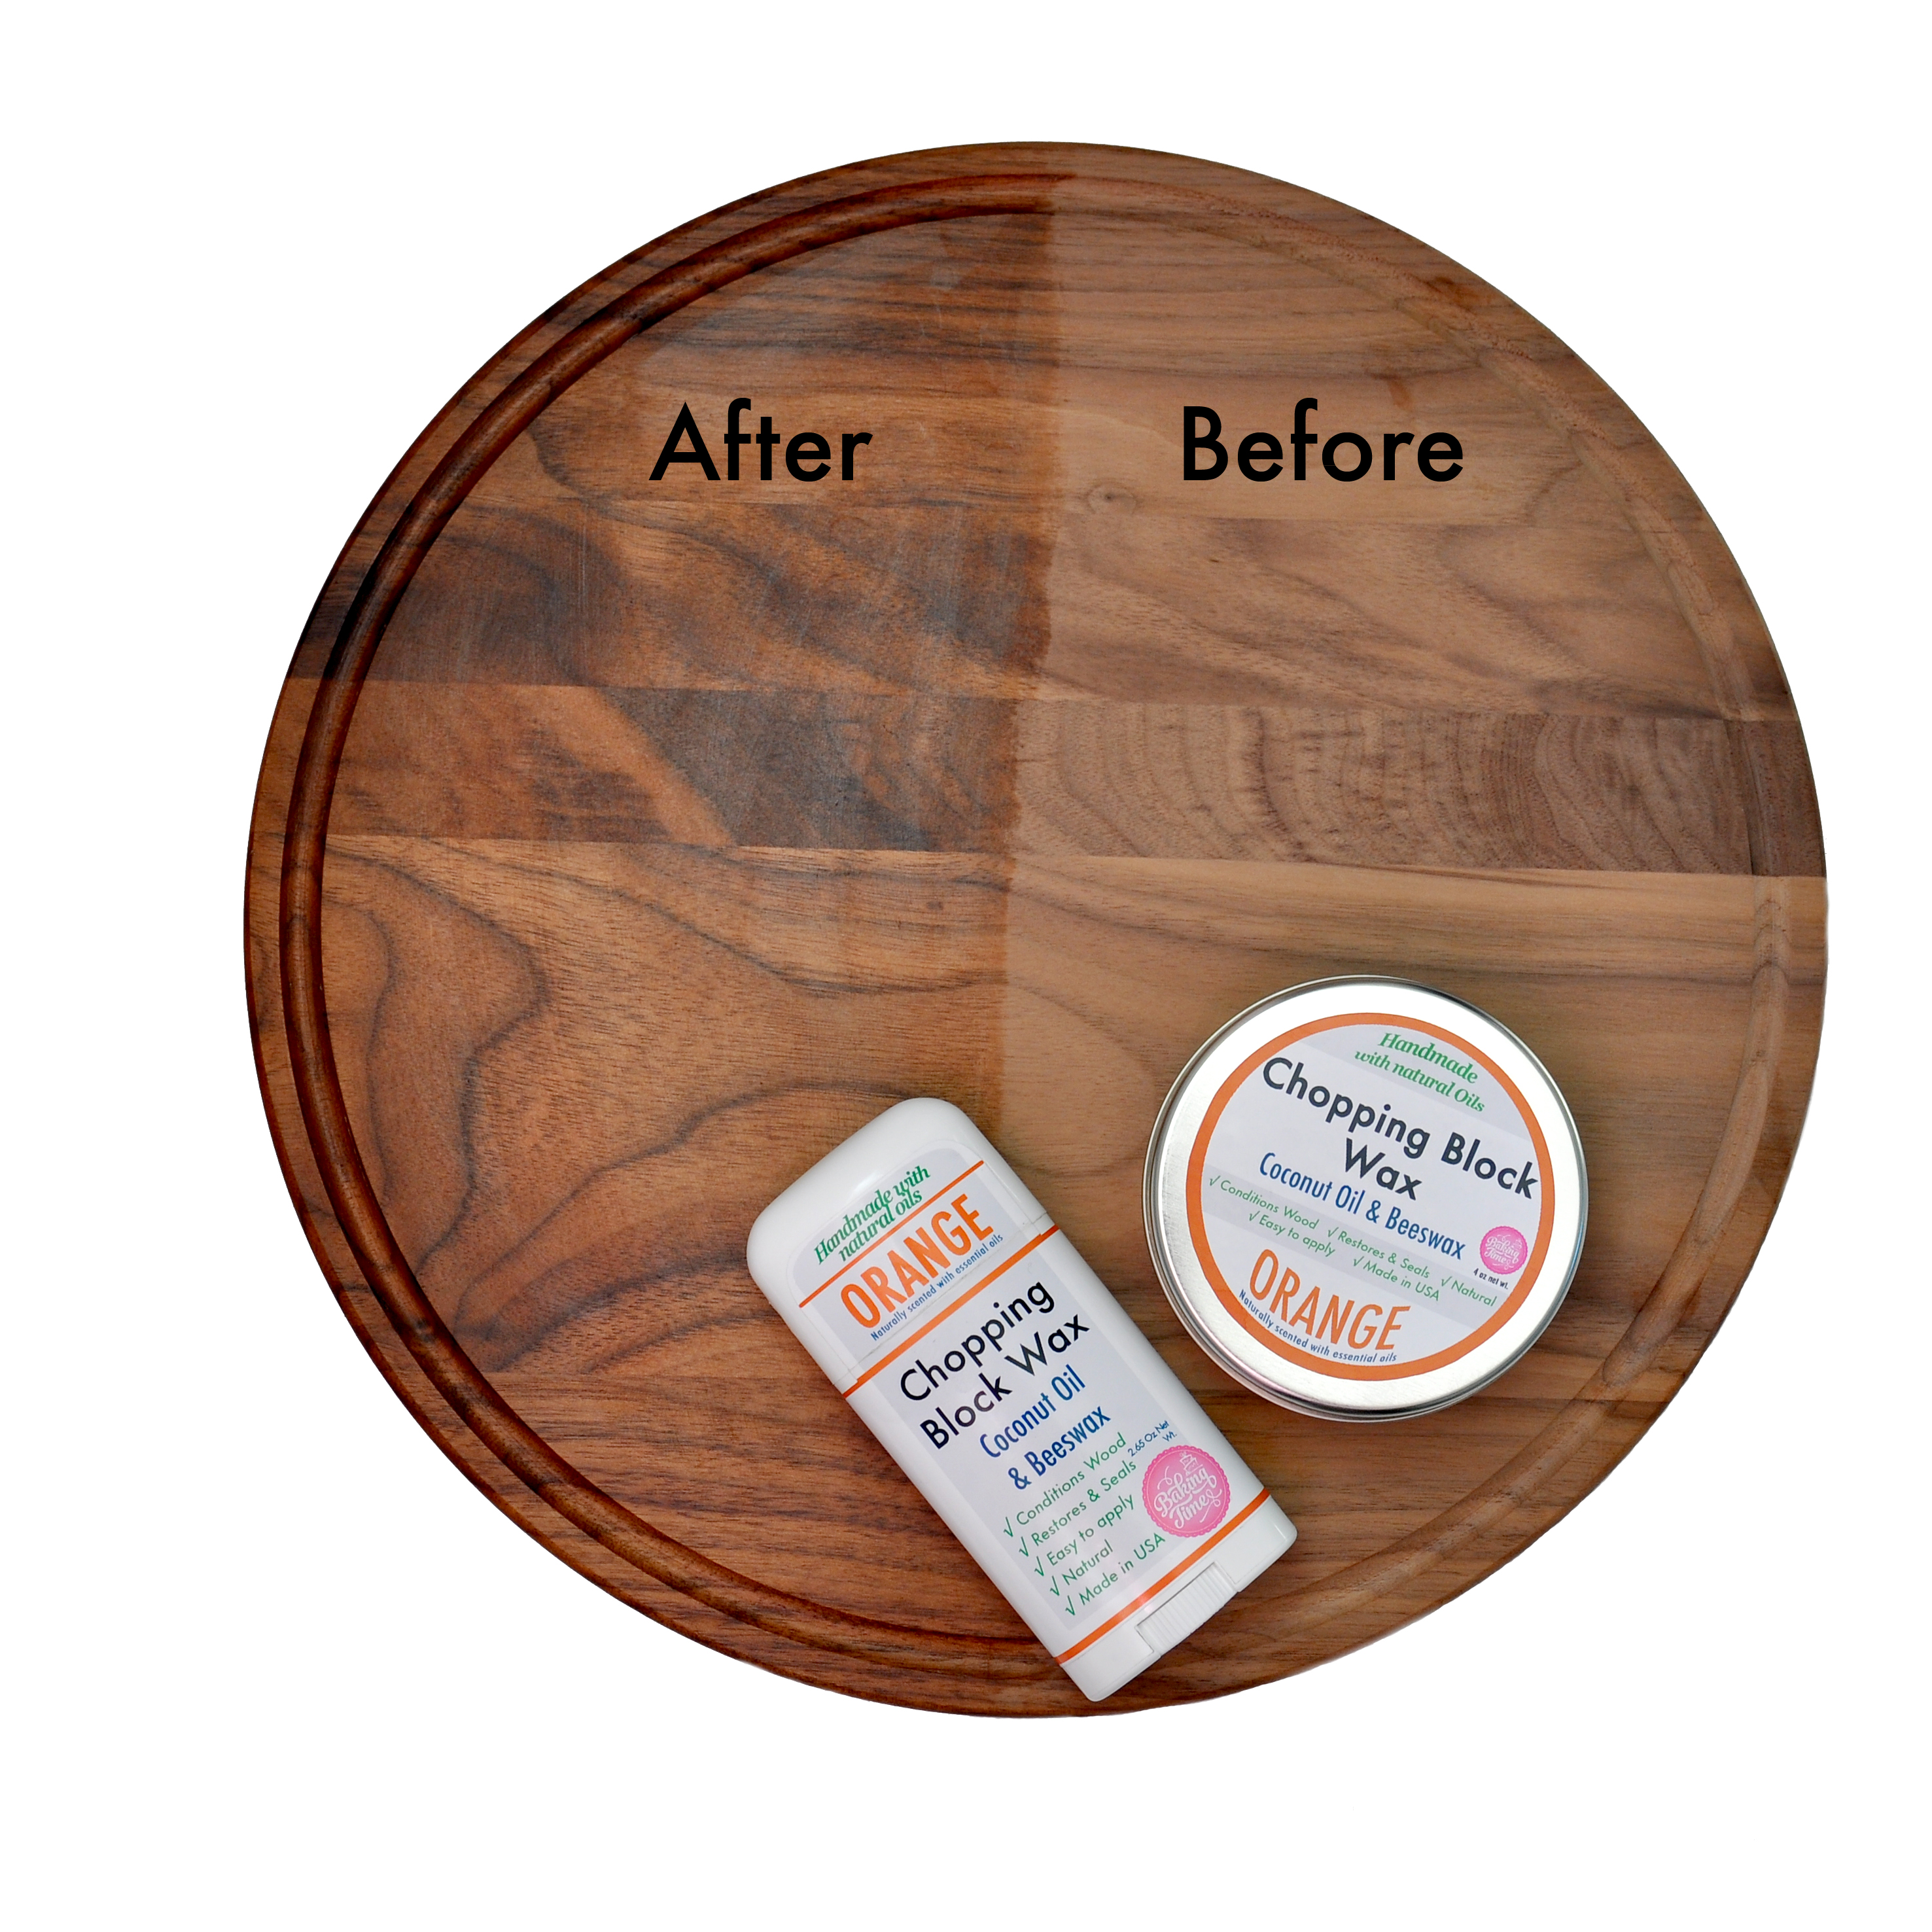 4 Natural Chopping Block Waxes With Essential Oils Baking Time Club